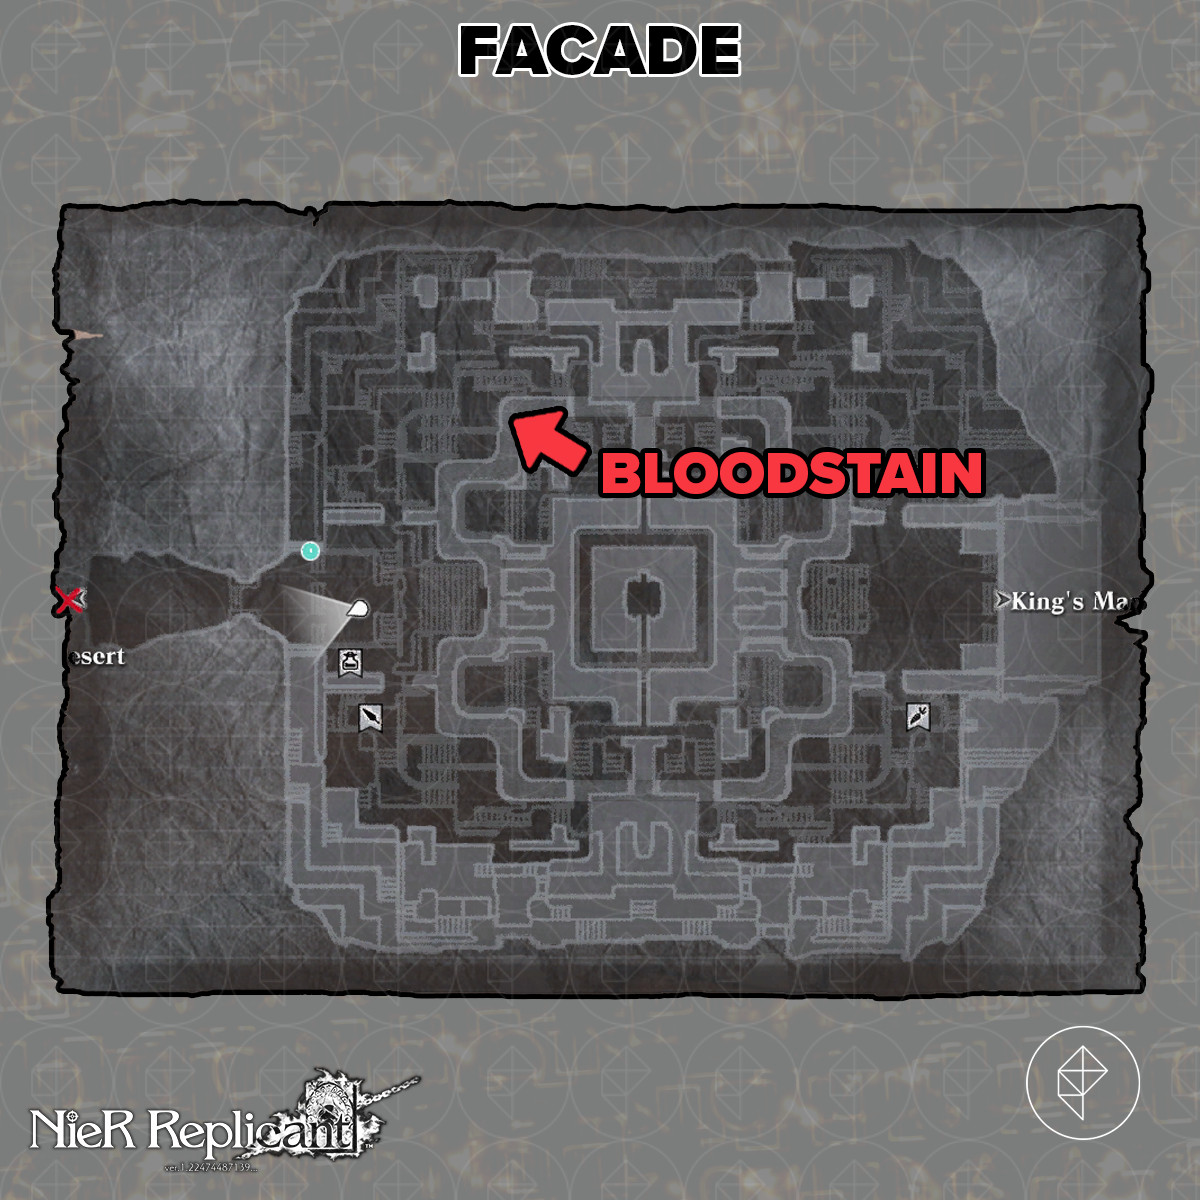 Nier Replicant Missing Girl Facade bloodstain location